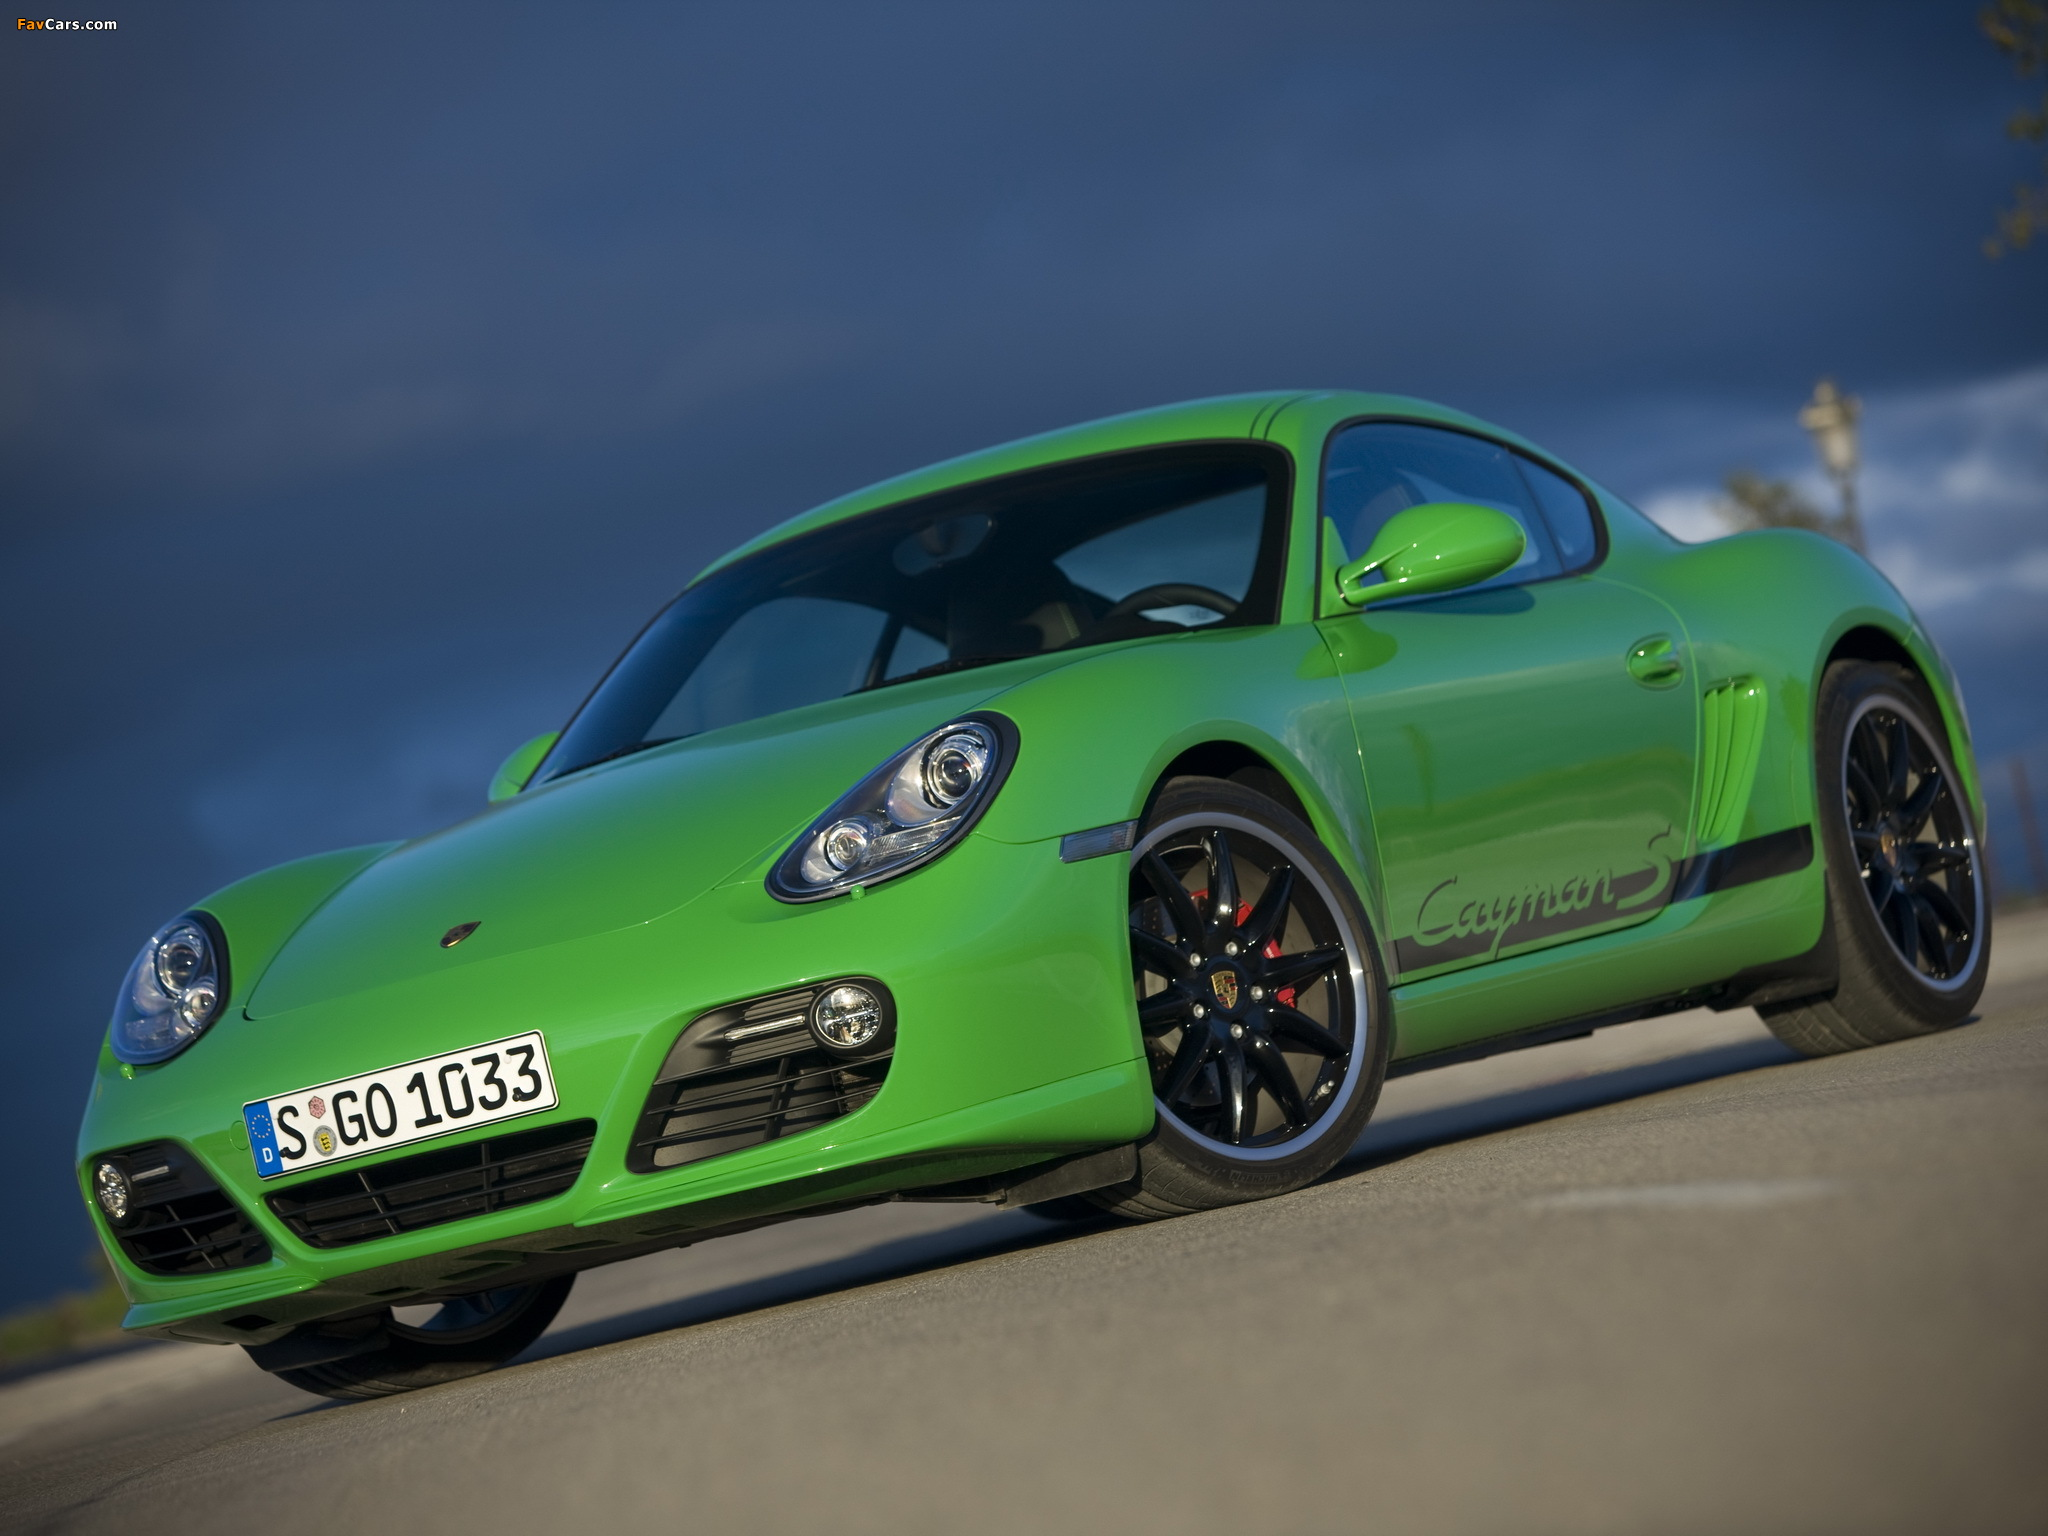 Porsche Cayman S Sport Limited Edition (987C) 2008 images (2048 x 1536 ...